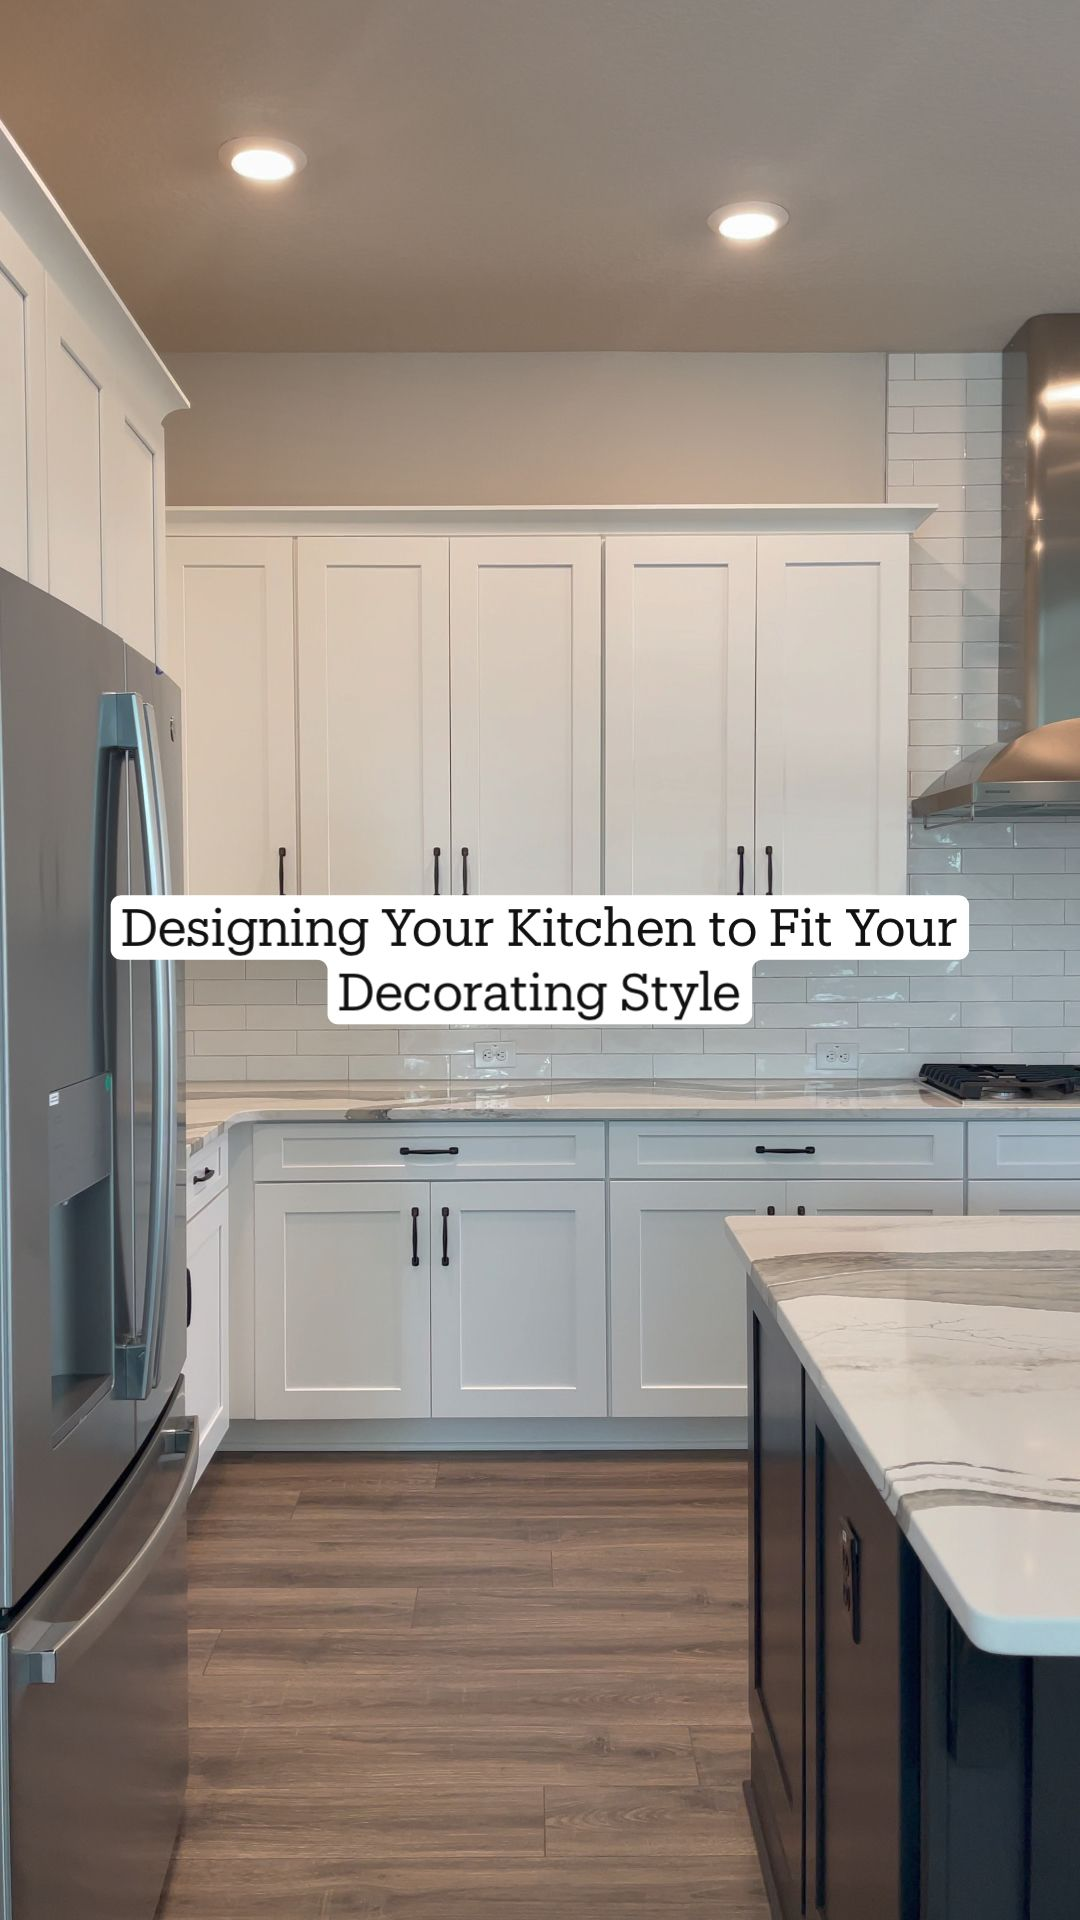 Designing Your Kitchen to Fit Your Decorating Styl